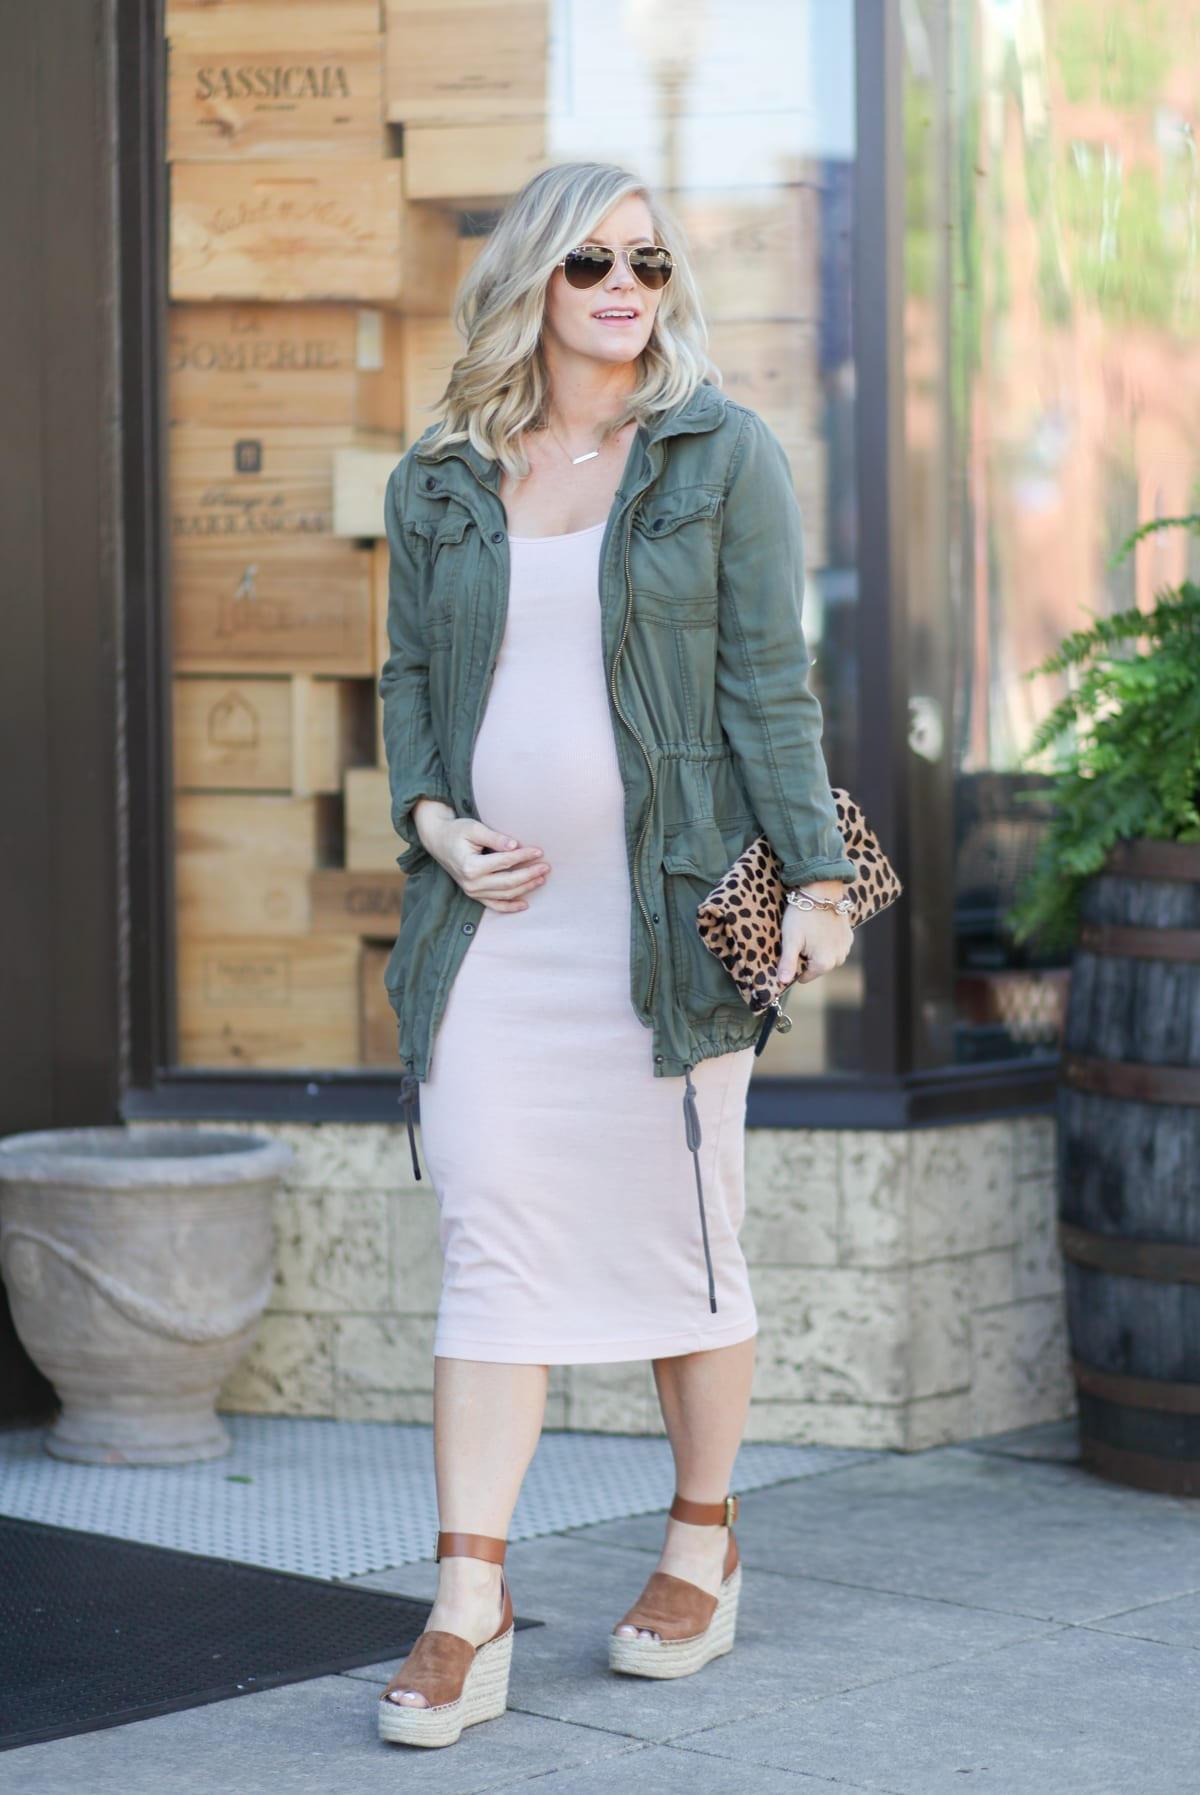 10 Pregnancy Items Every Mom to Be Needs + My Favorite Maternity Look